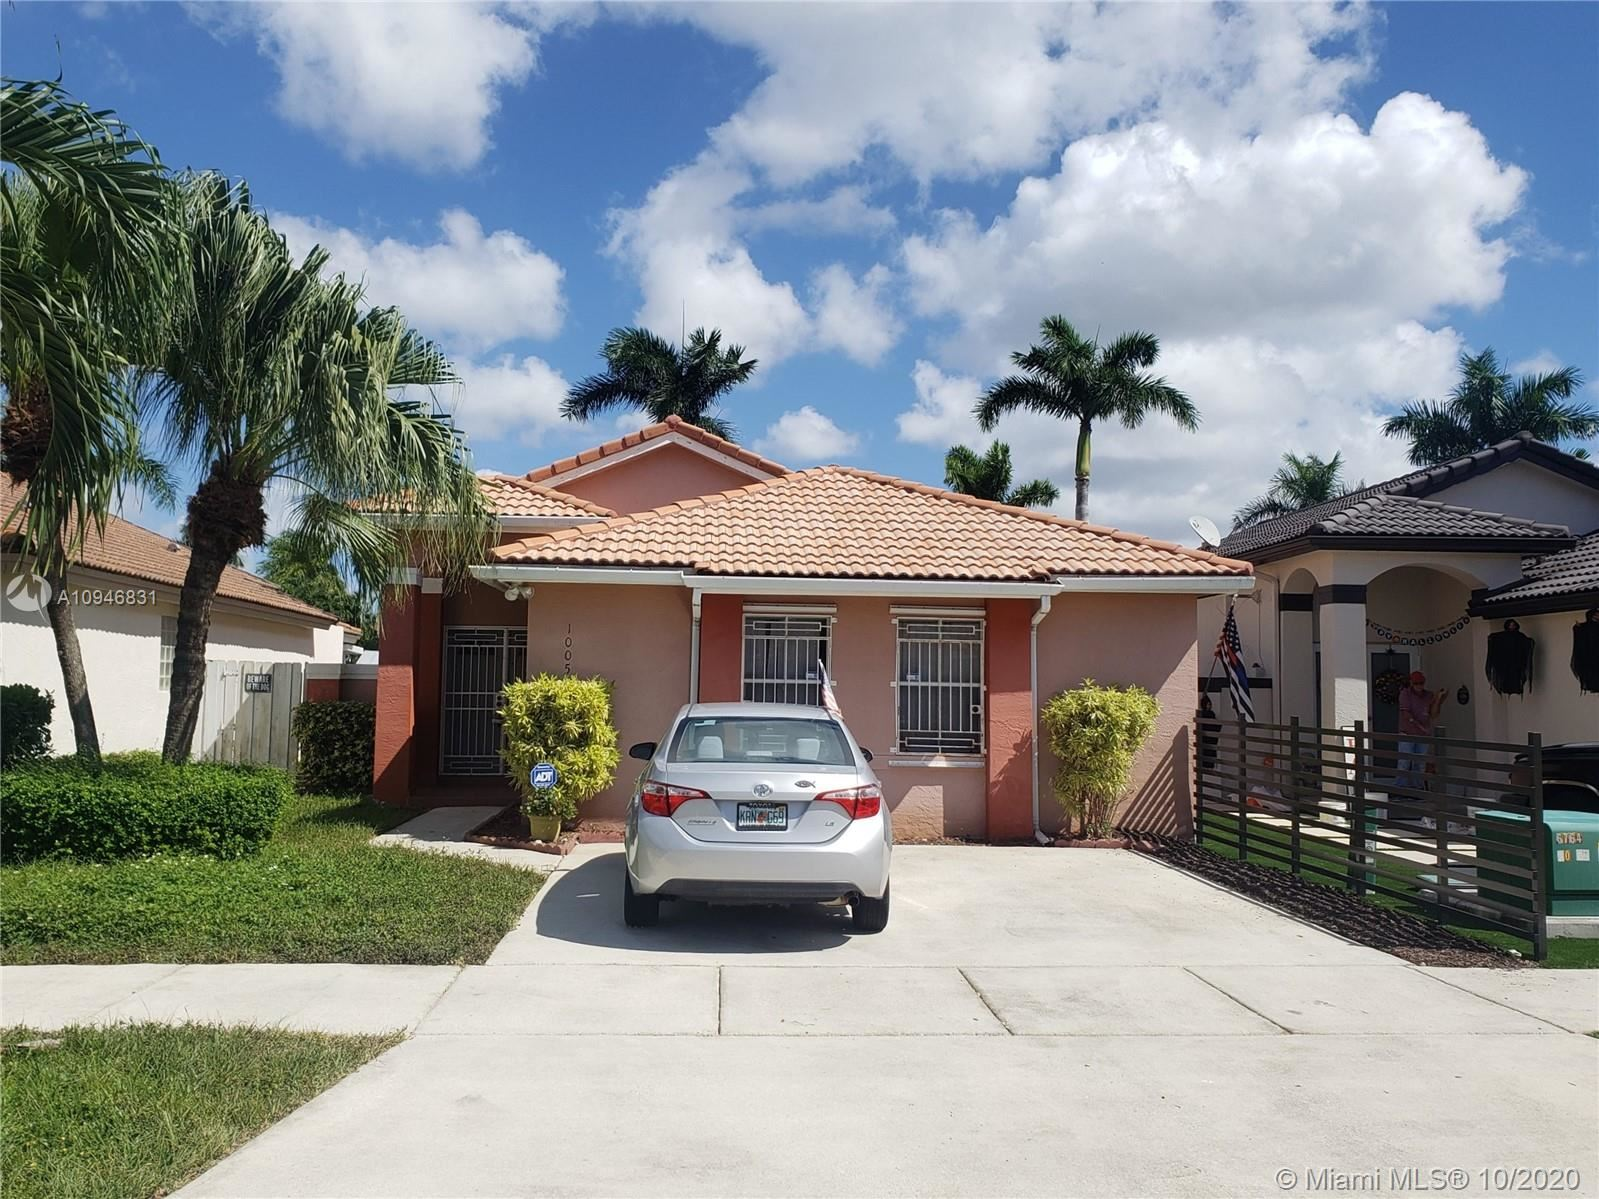 1005 NW 132nd Ave W, Miami, FL 33182 - #: A10946831